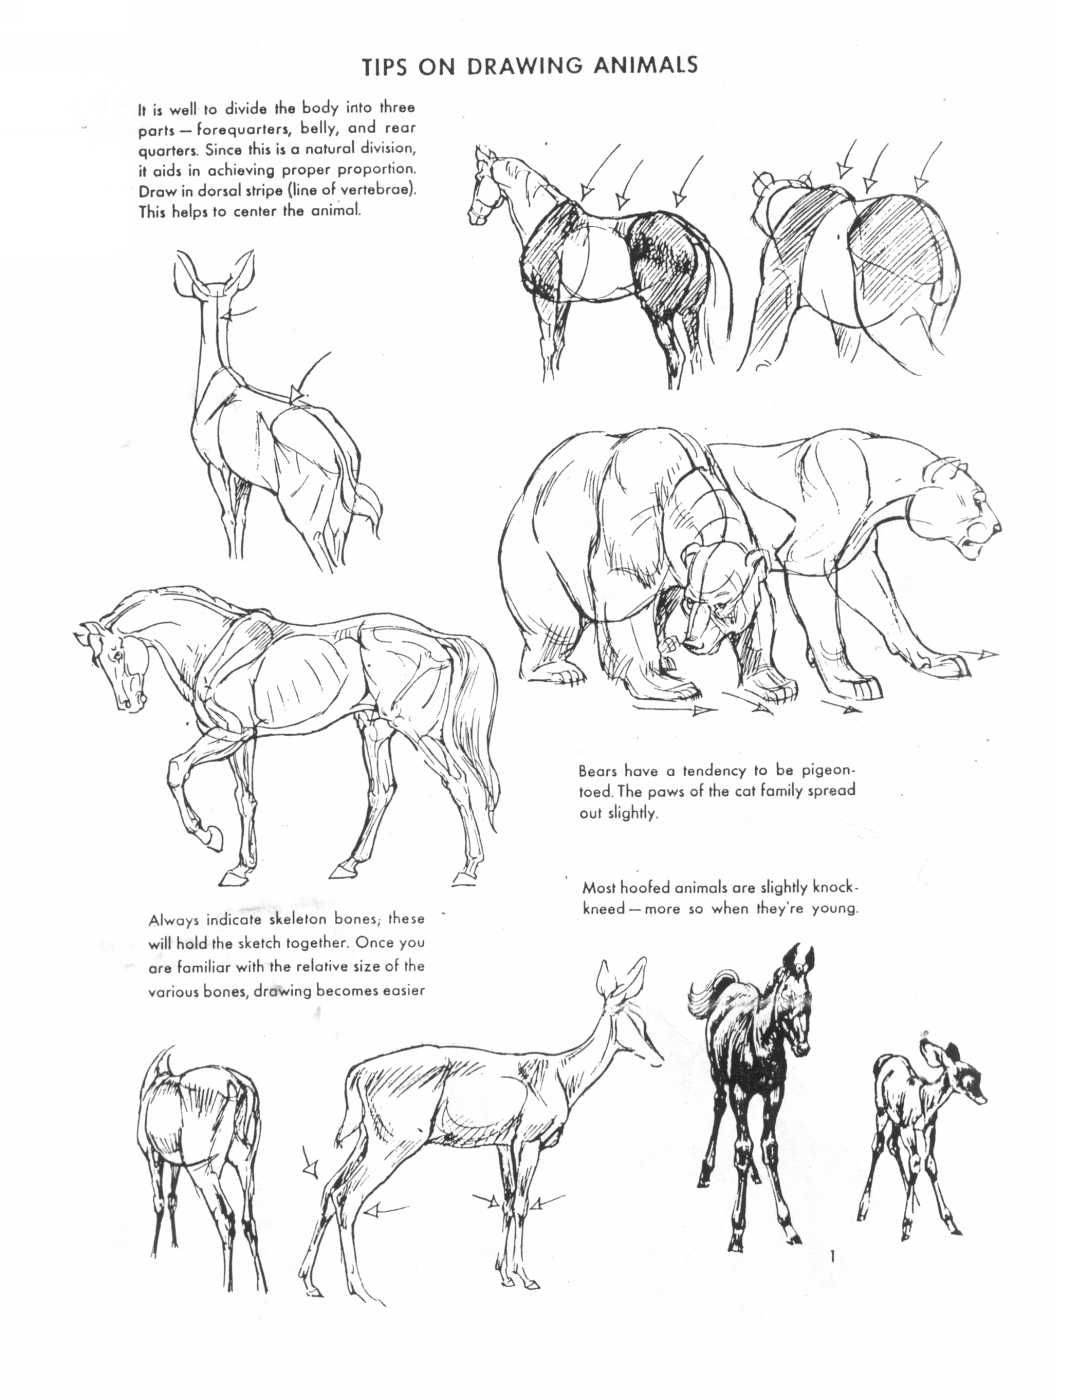 Pin by ALEX DING on Drawing   Pinterest   Animal drawings, Draw and ...